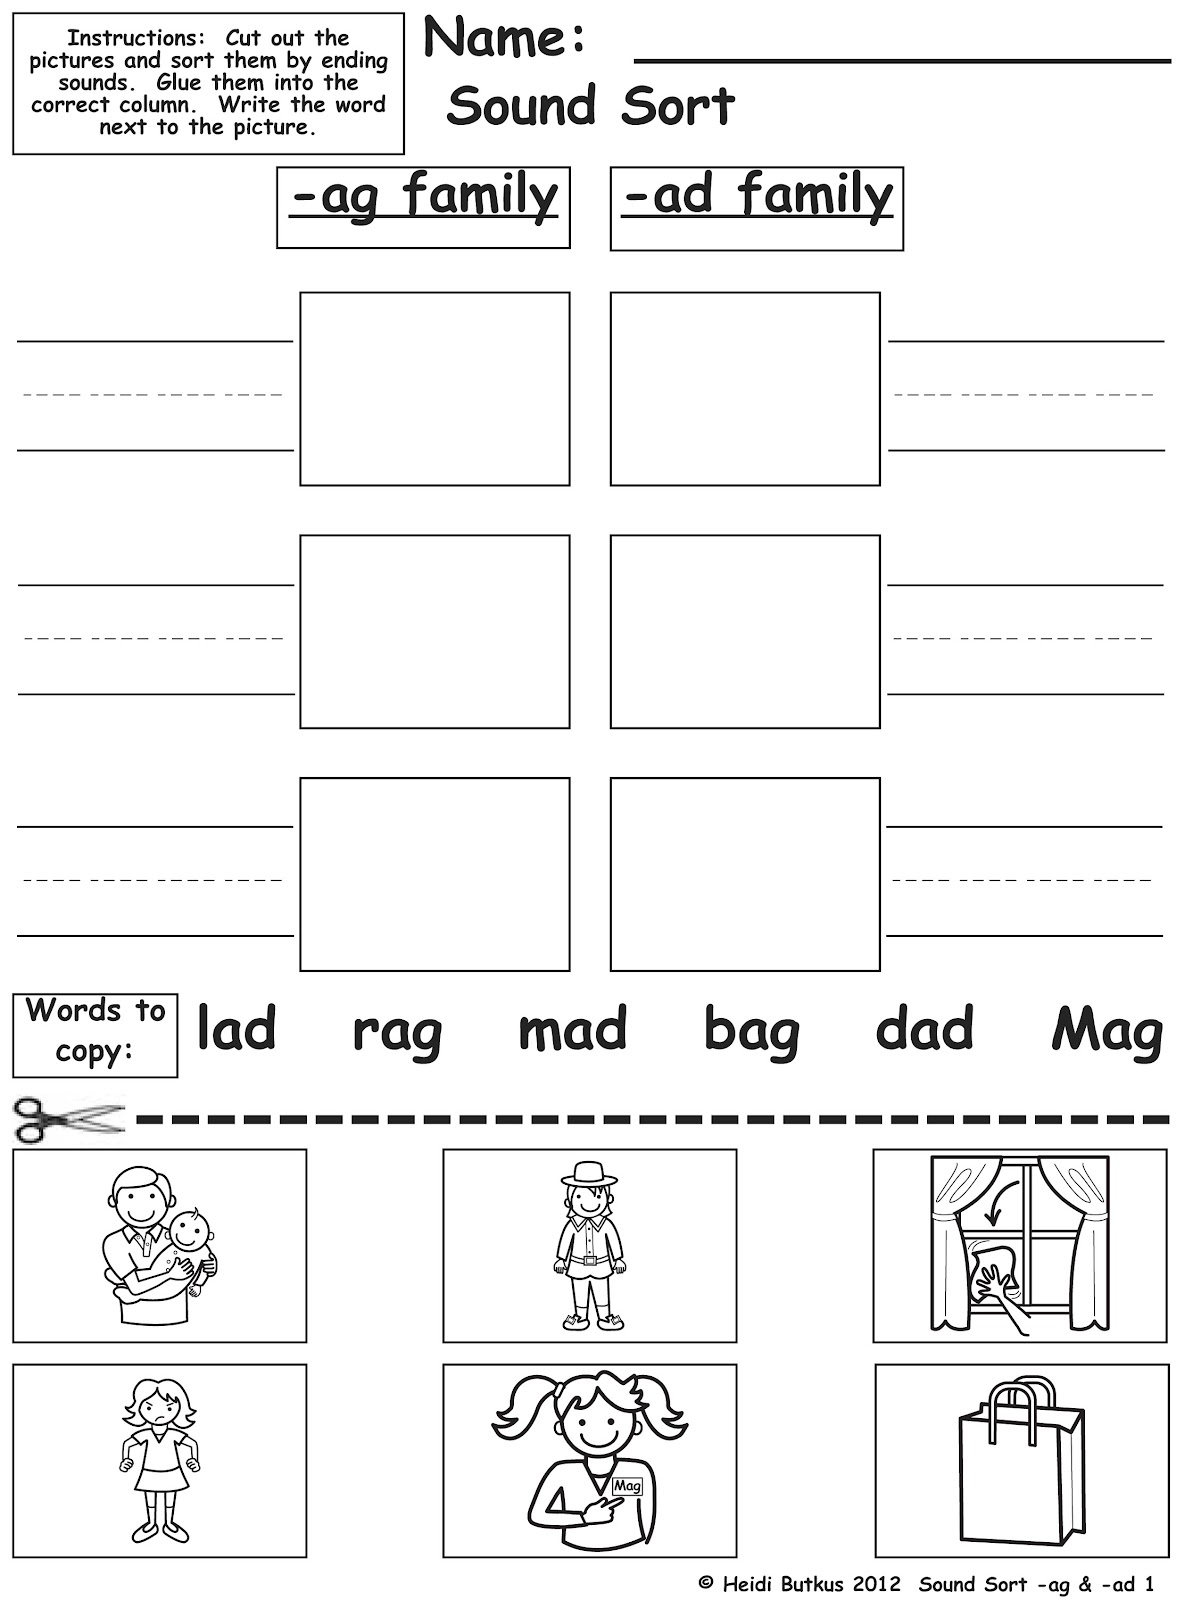 Word Sort: Sounds of -ed | Worksheet | Education.com